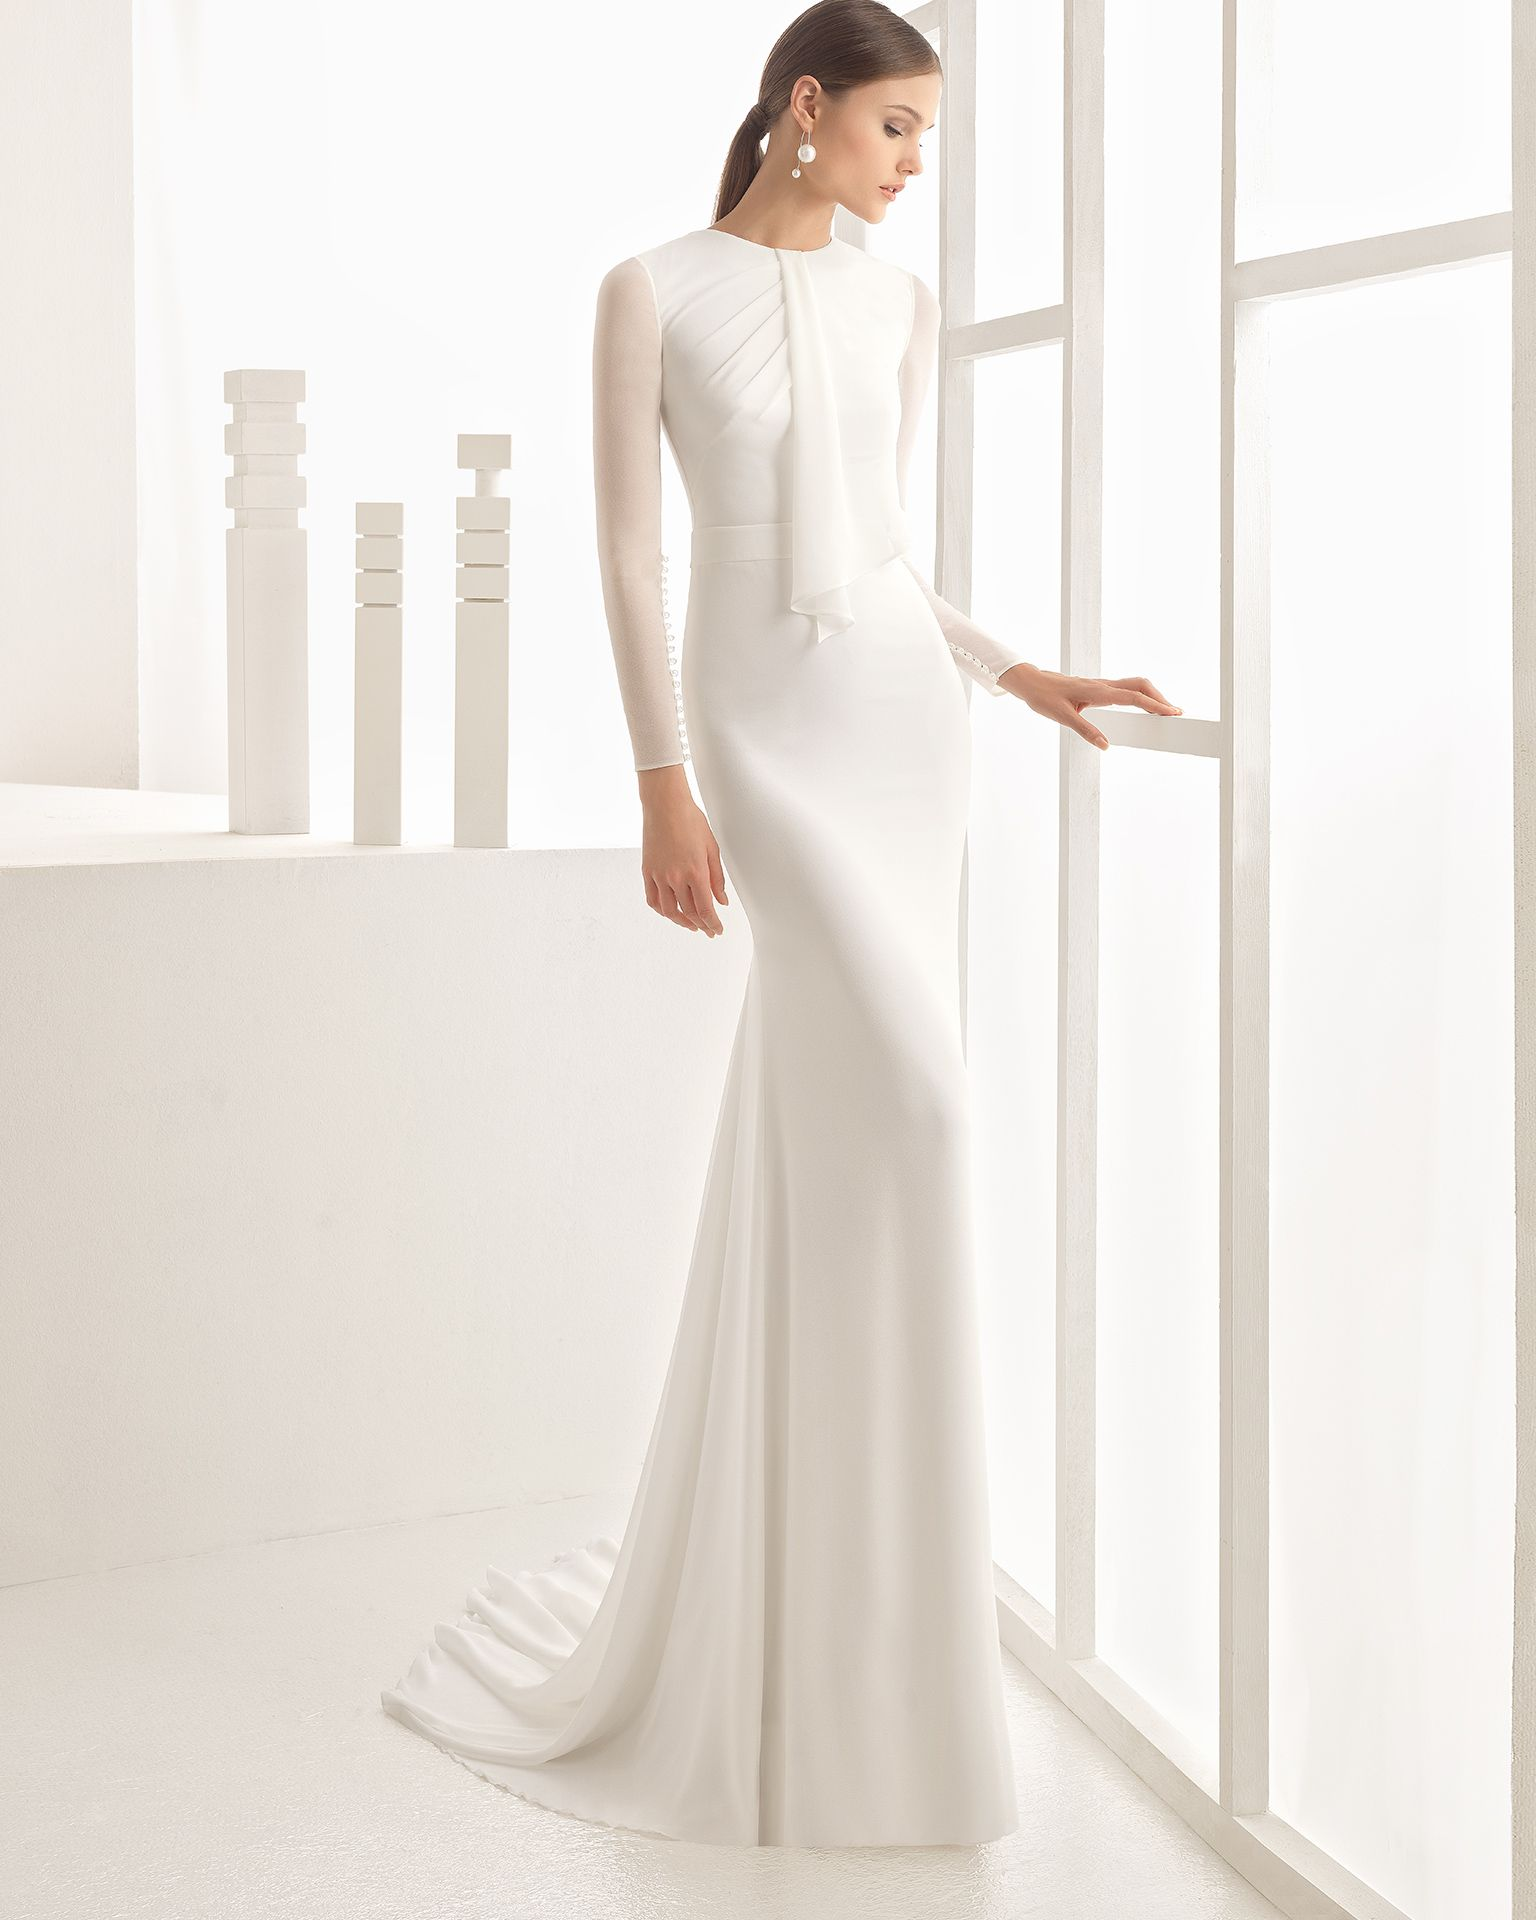 Crepe Georgette wedding gown. Rosa Clará 2017 Collection.